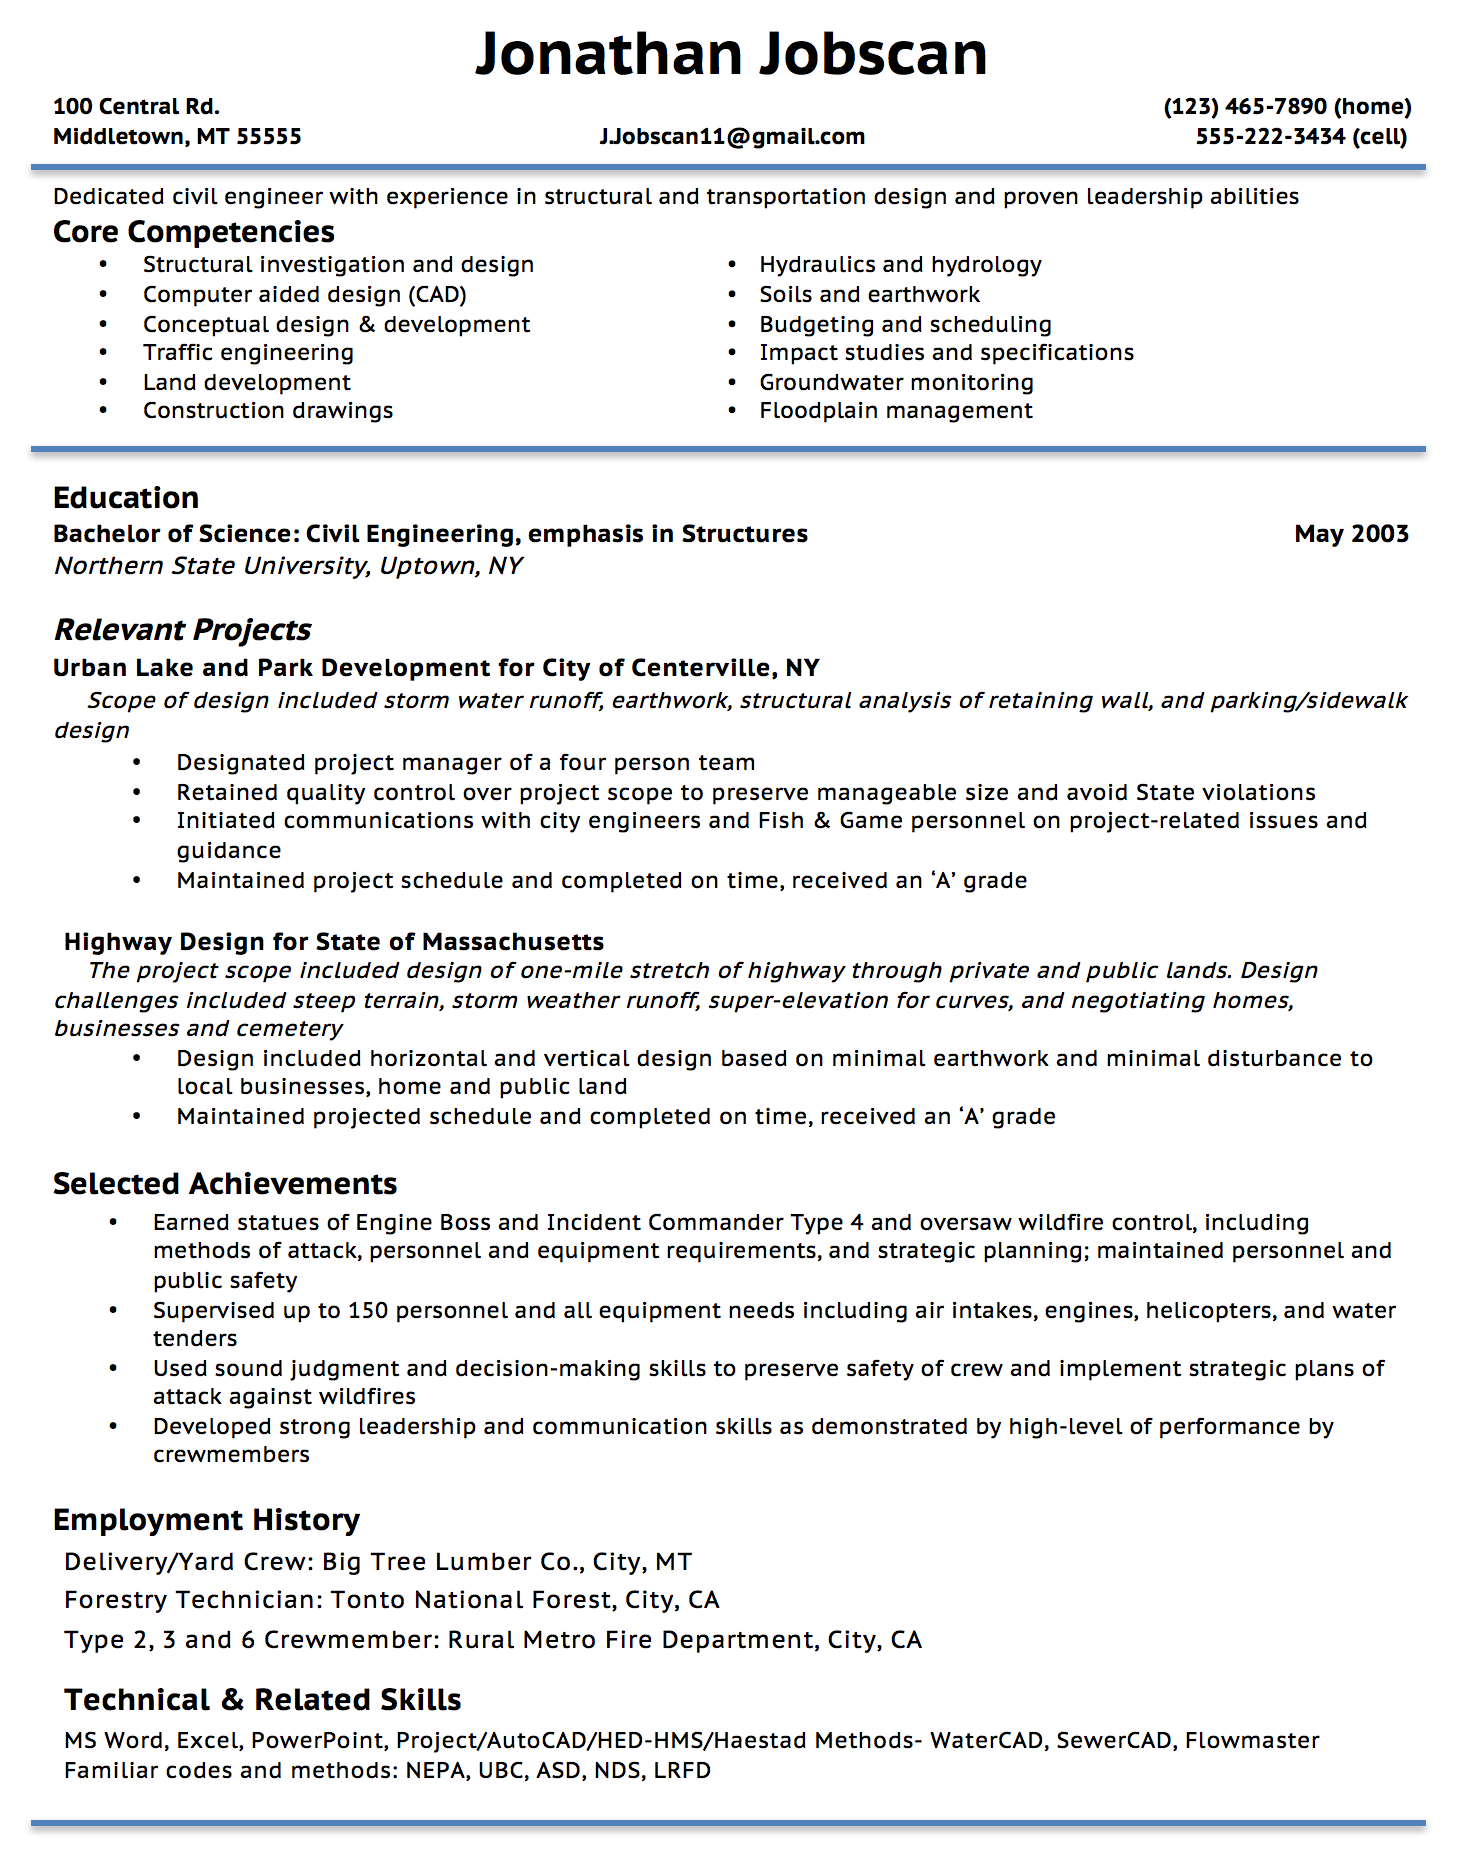 Opposenewapstandardsus  Nice Resume Writing Guide  Jobscan With Glamorous Example Of A Functional Resume Format With Amazing Best Resume Template Also Skills To List On Resume In Addition Acting Resume And Objectives For Resume As Well As Resume Writers Additionally Basic Resume Examples From Jobscanco With Opposenewapstandardsus  Glamorous Resume Writing Guide  Jobscan With Amazing Example Of A Functional Resume Format And Nice Best Resume Template Also Skills To List On Resume In Addition Acting Resume From Jobscanco